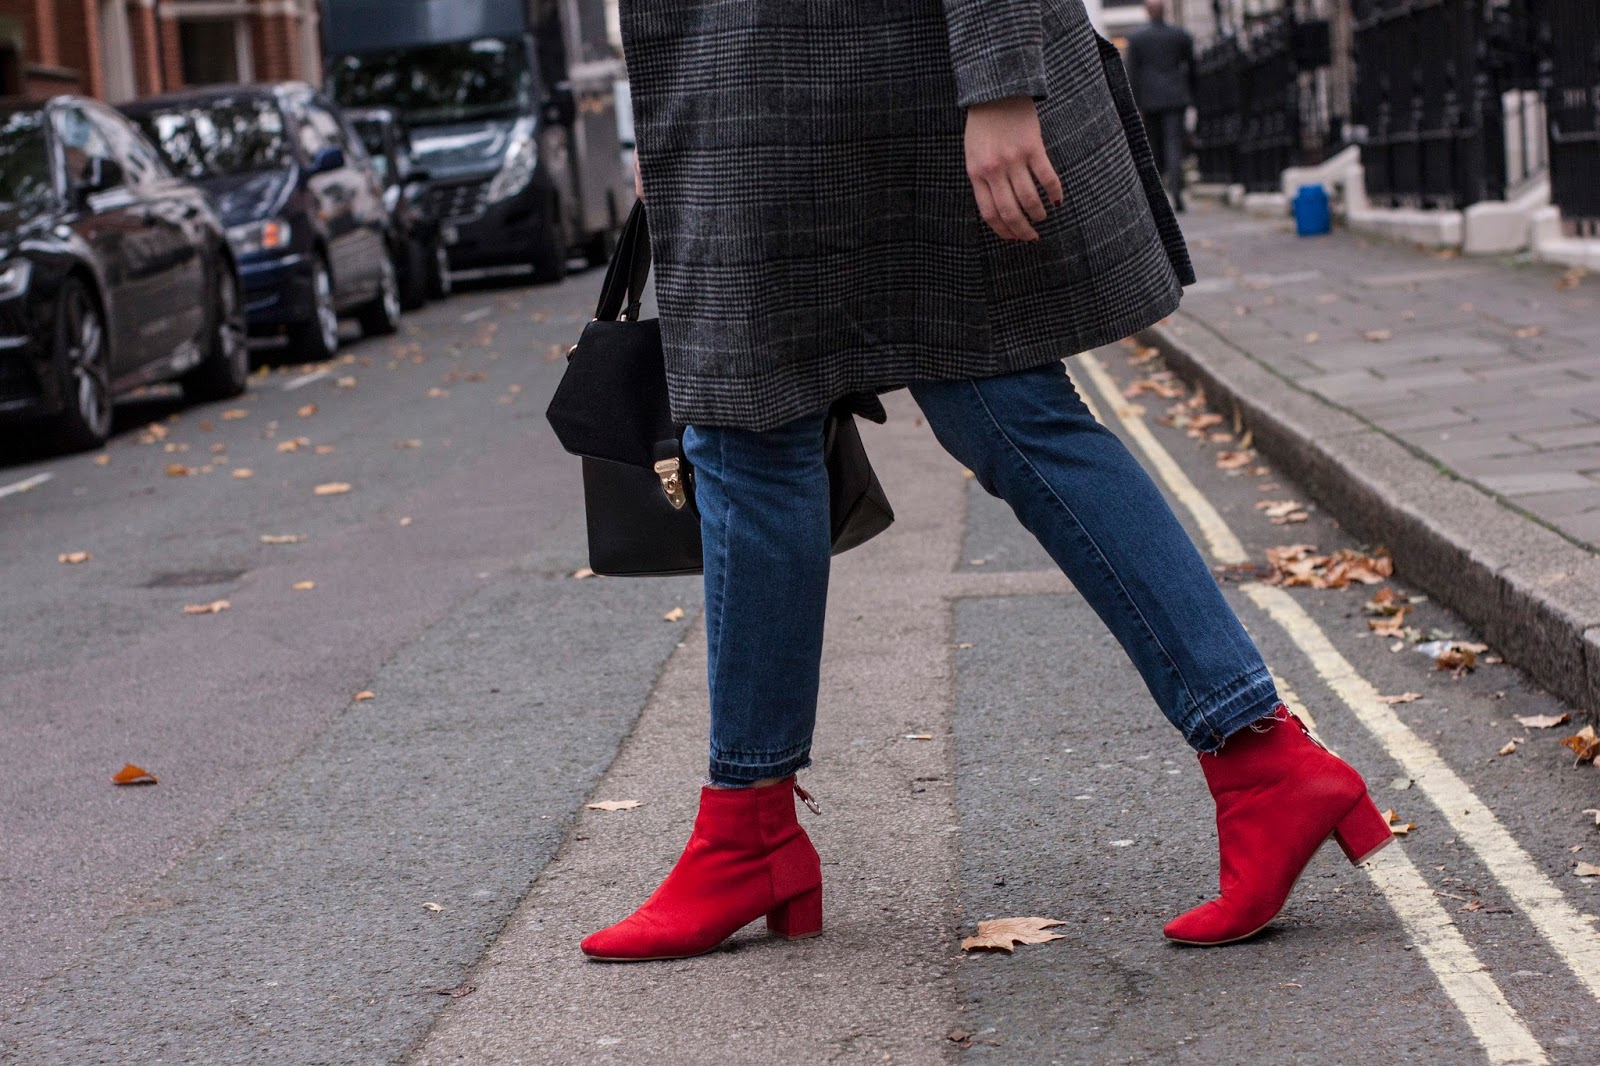 Eboni wears Red boots from pretty little thing